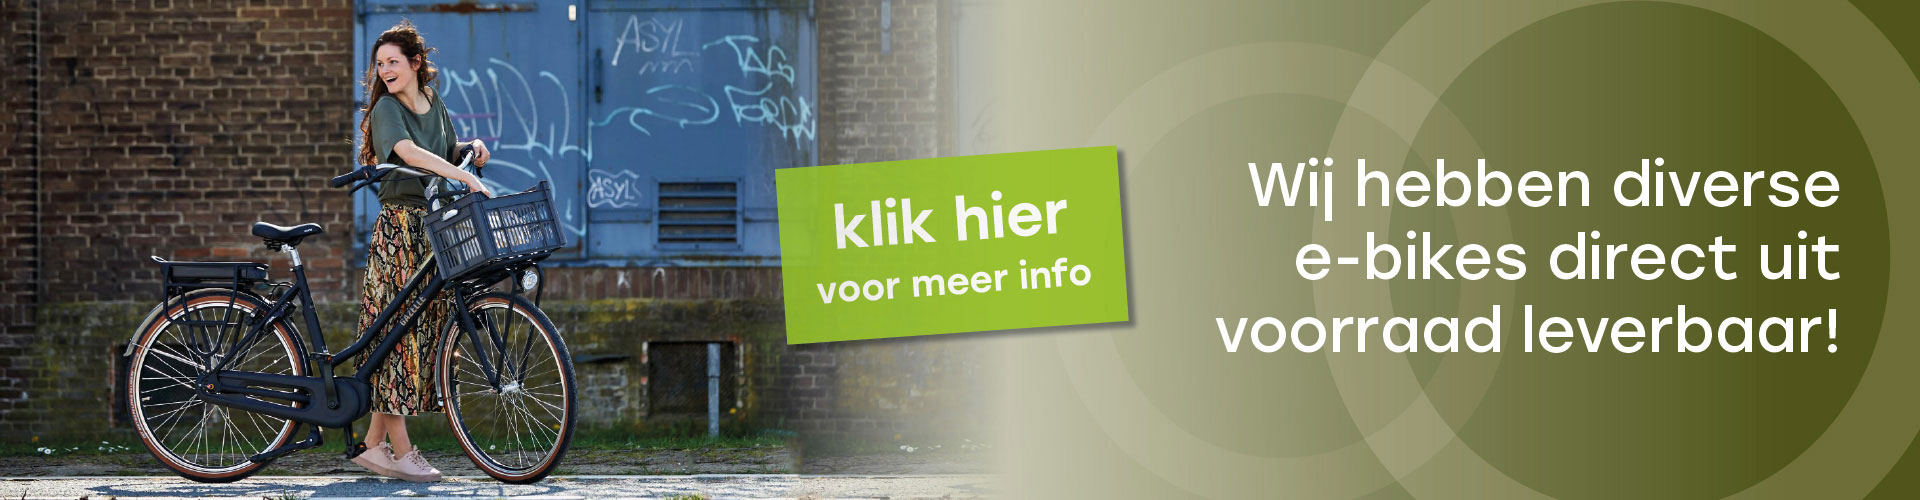 Grote-banners-e-bikes-opvoorraad